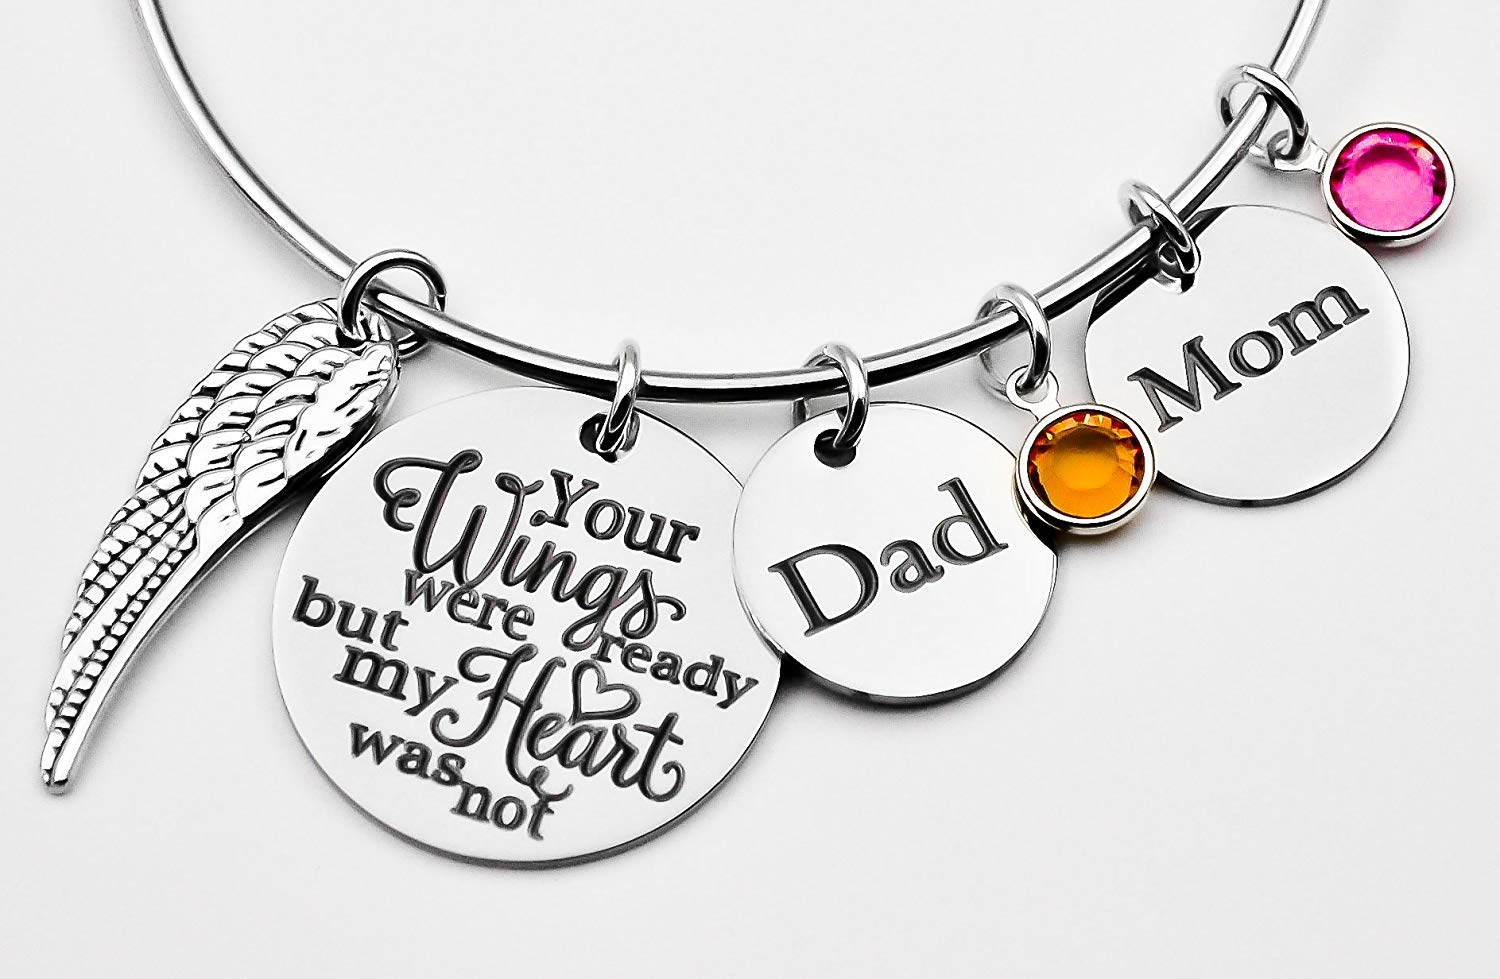 Memorial jewelry, your wings were ready but my heart was not, bangle bracelet, stainless steel bangle, loss of loved one, sympathy gift, mom, dad, name, adjustable bangle bracelet, Mom and Dad